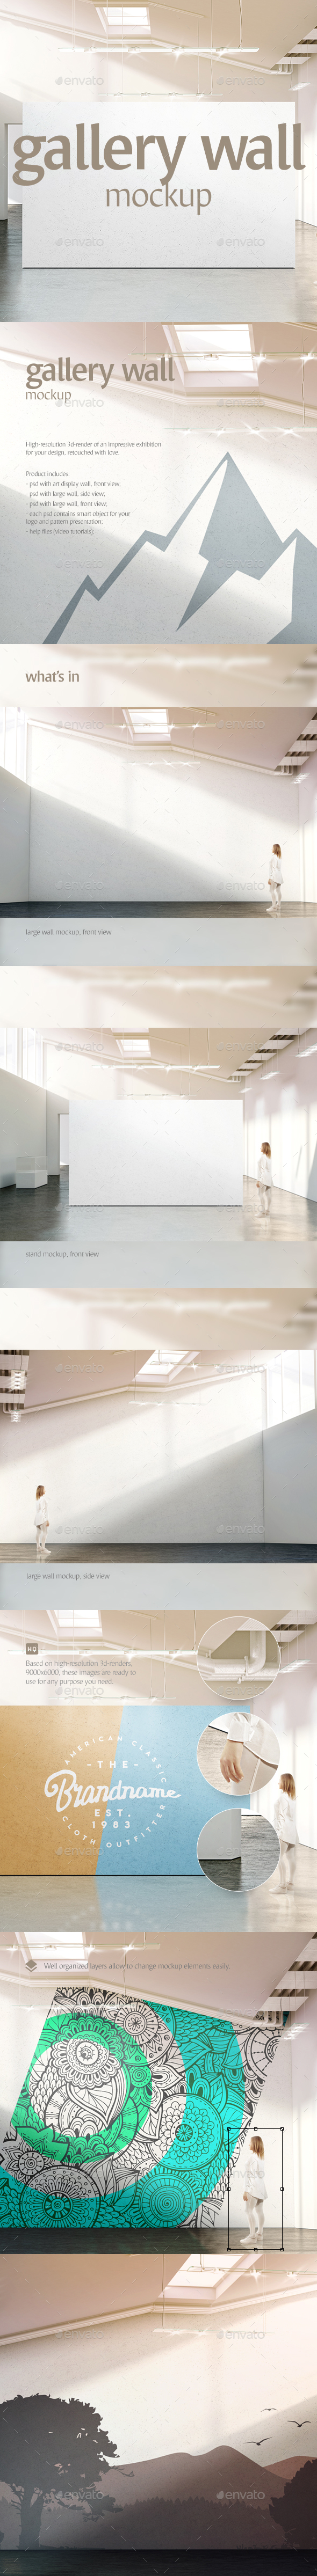 Gallery Wall Mockup - Objects 3D Renders